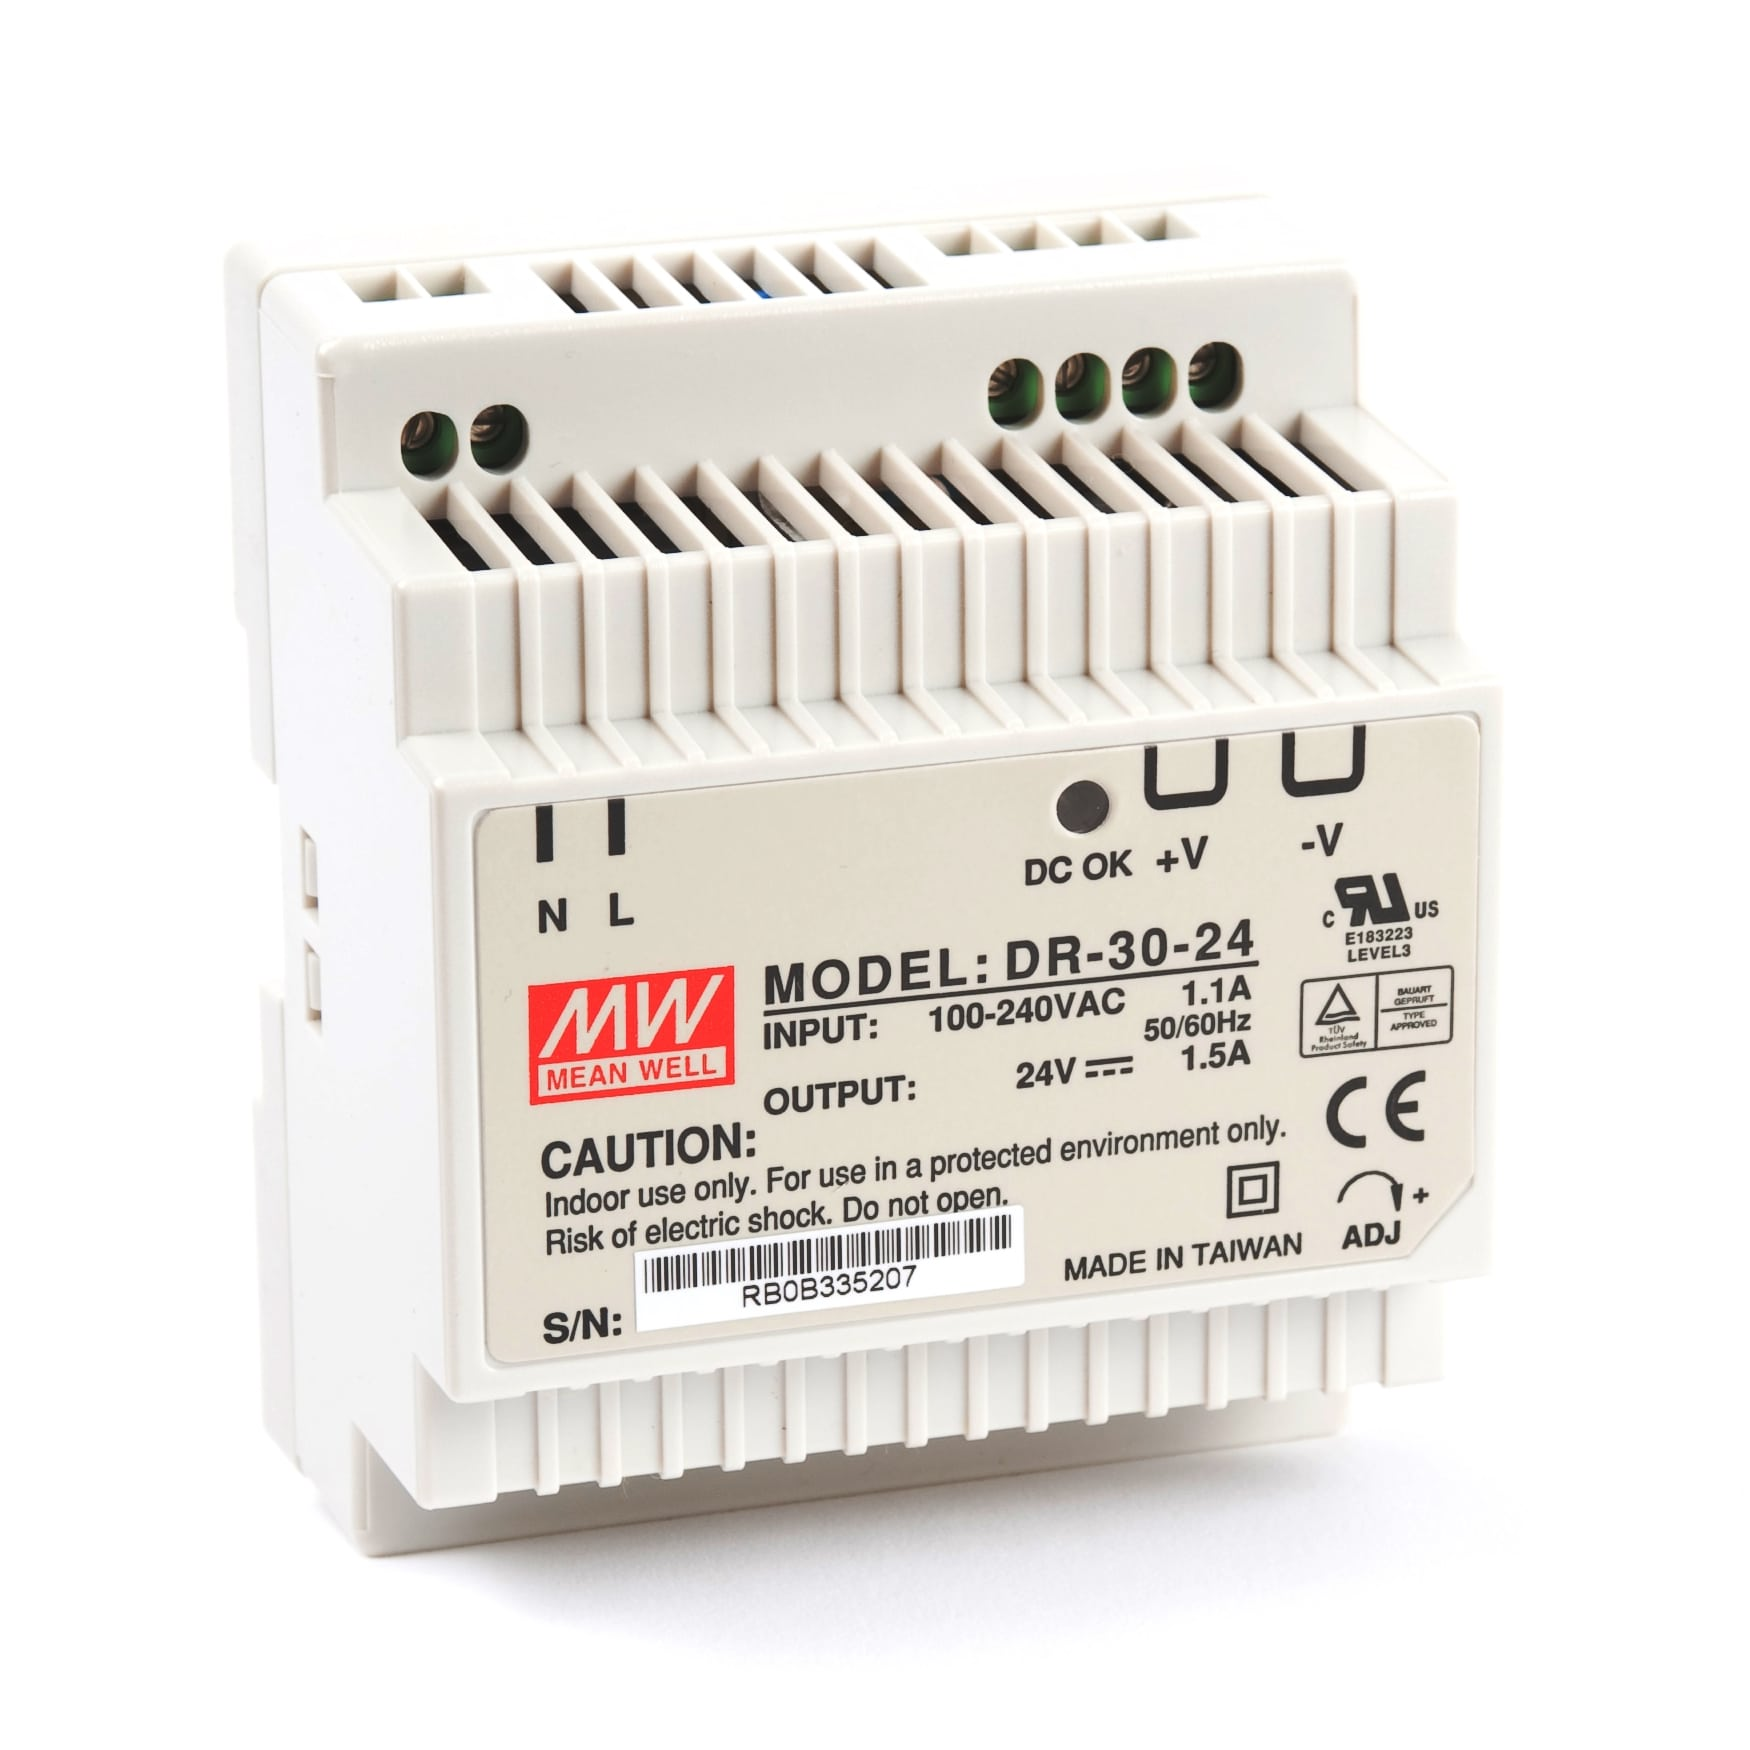 MW Mean Well DR-30-24 24V 1.25A 30W Single Output Industrial DIN RAIL Power Supply